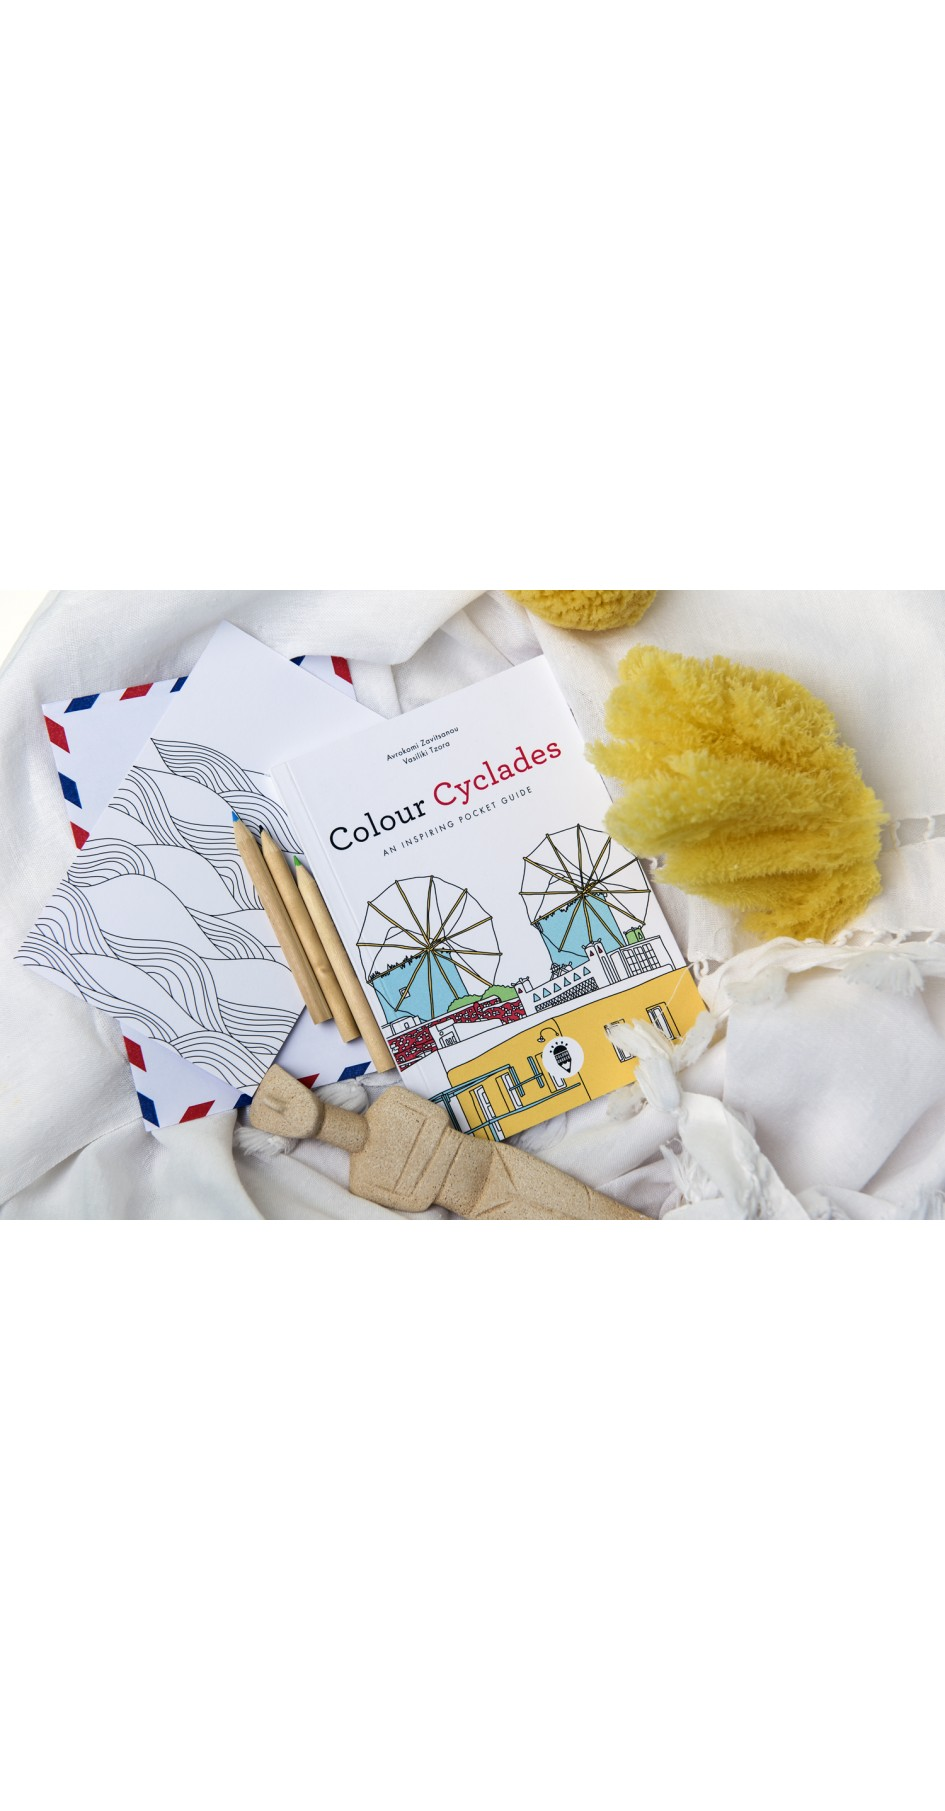 Colour Cyclades - An Inspiring Pocket Guide